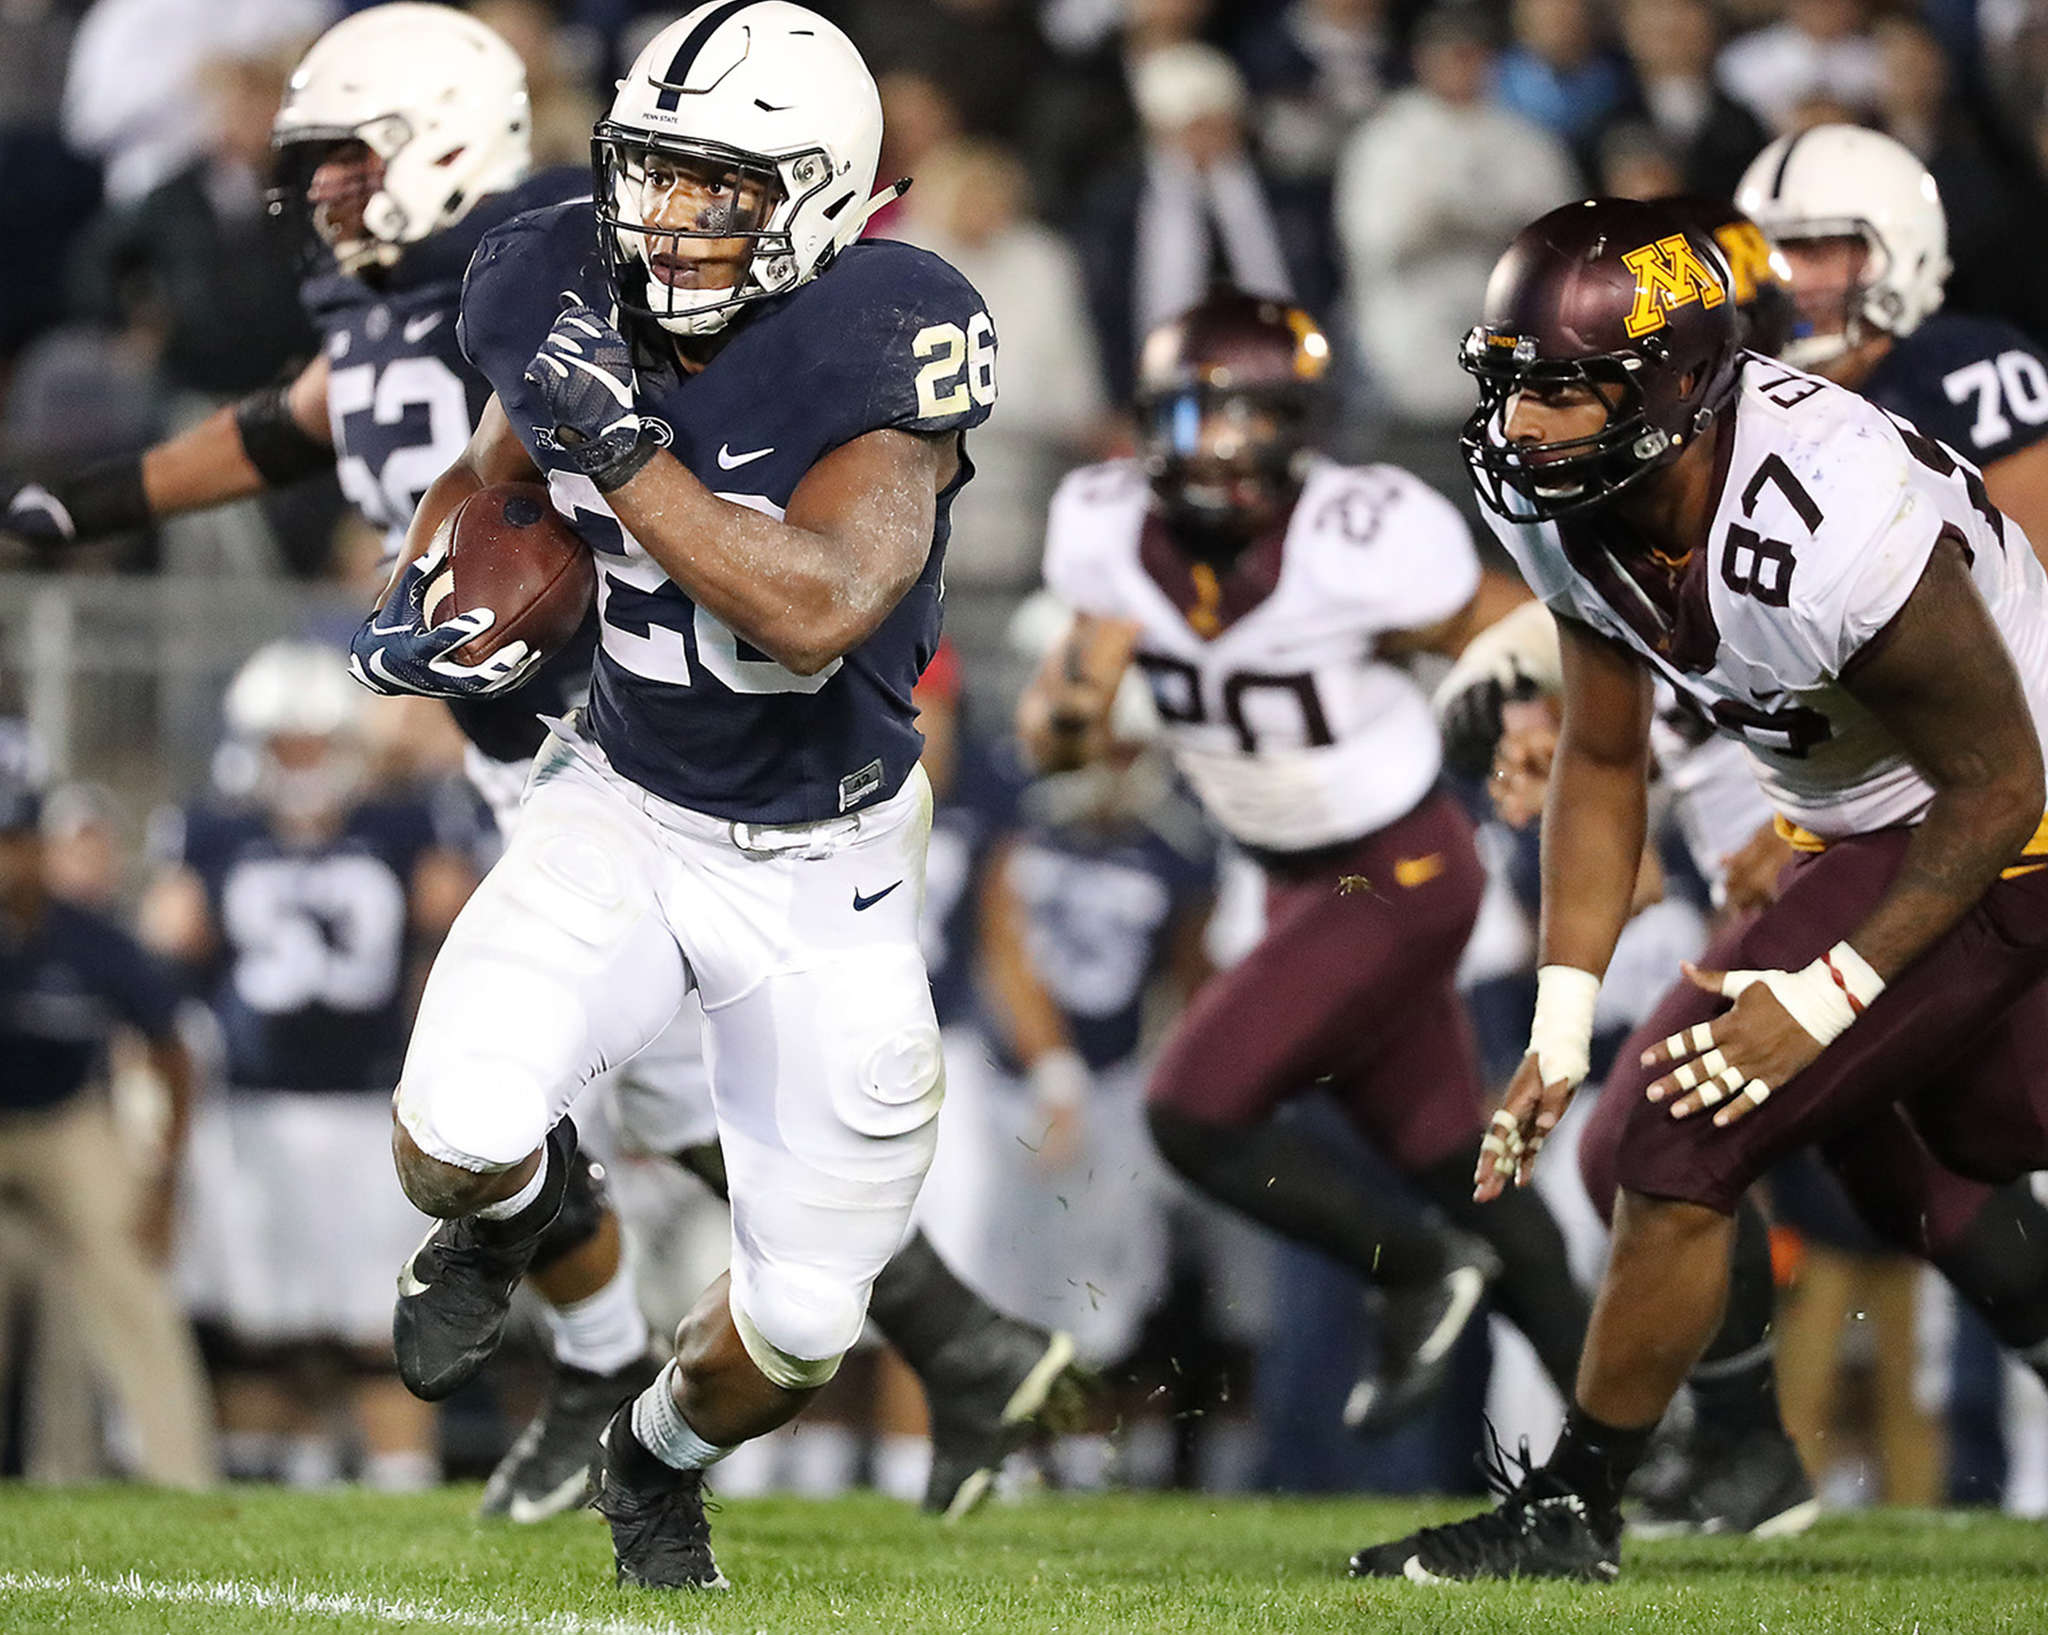 Penn State´s Saquon Barkley outruns Minnesota defenders en route to game-winning touchdown in overtime.